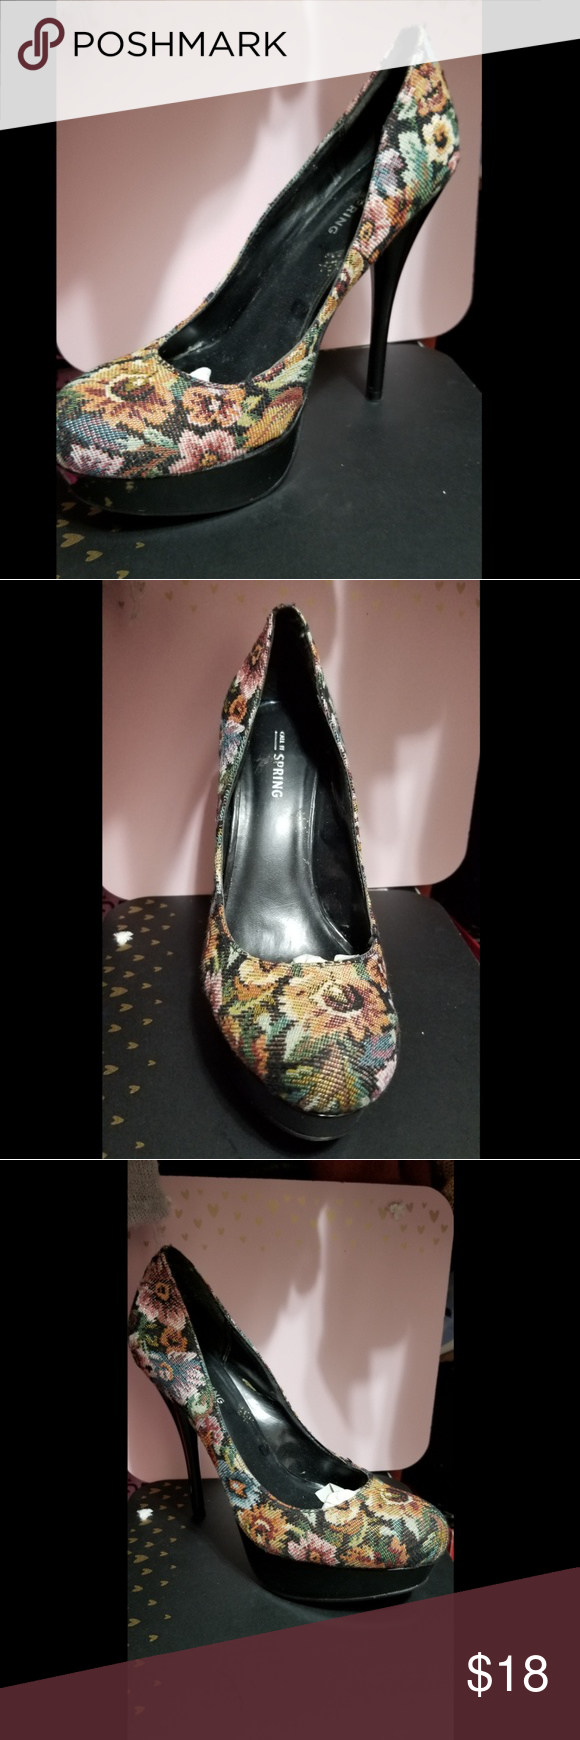 0a8dd6d711 Cute and Sexy Floral Stilleto Heels Cute floral design 5 inch Platform  Stilleto heel Call It Spring Shoes Heels